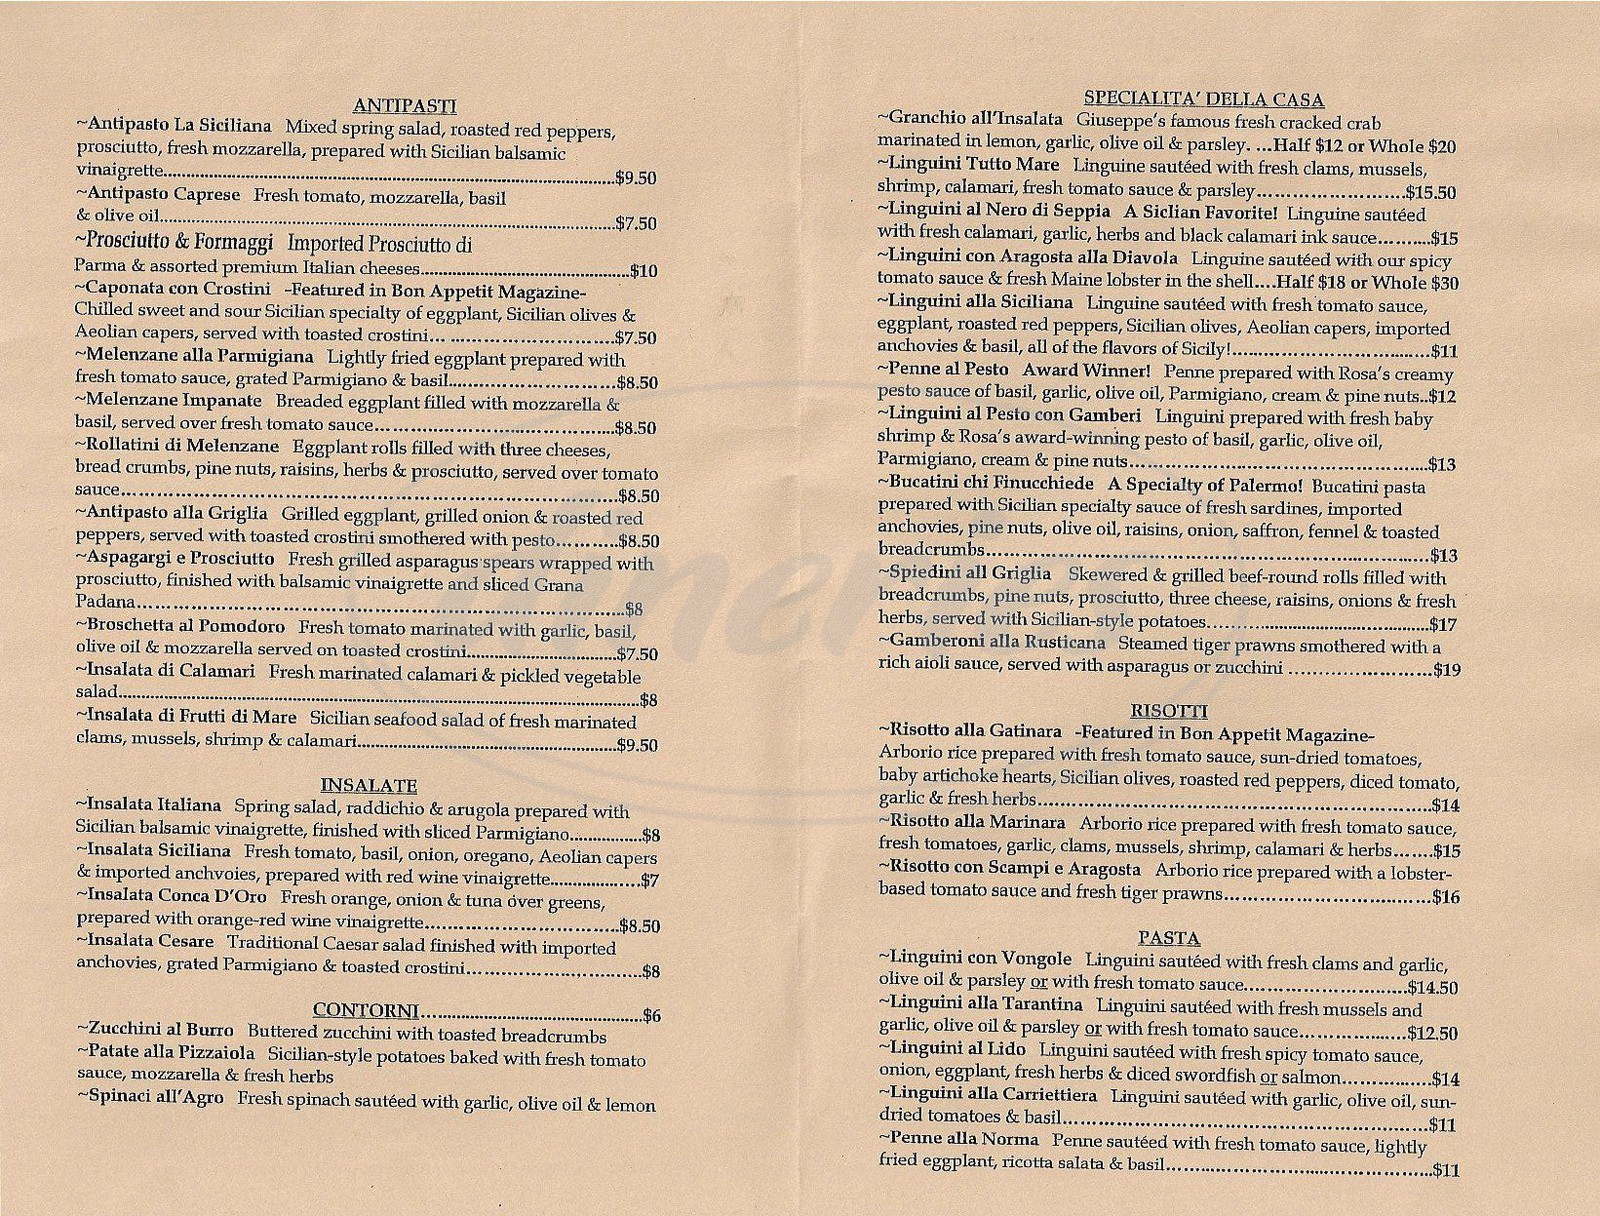 menu for Trattioria La Siciliana